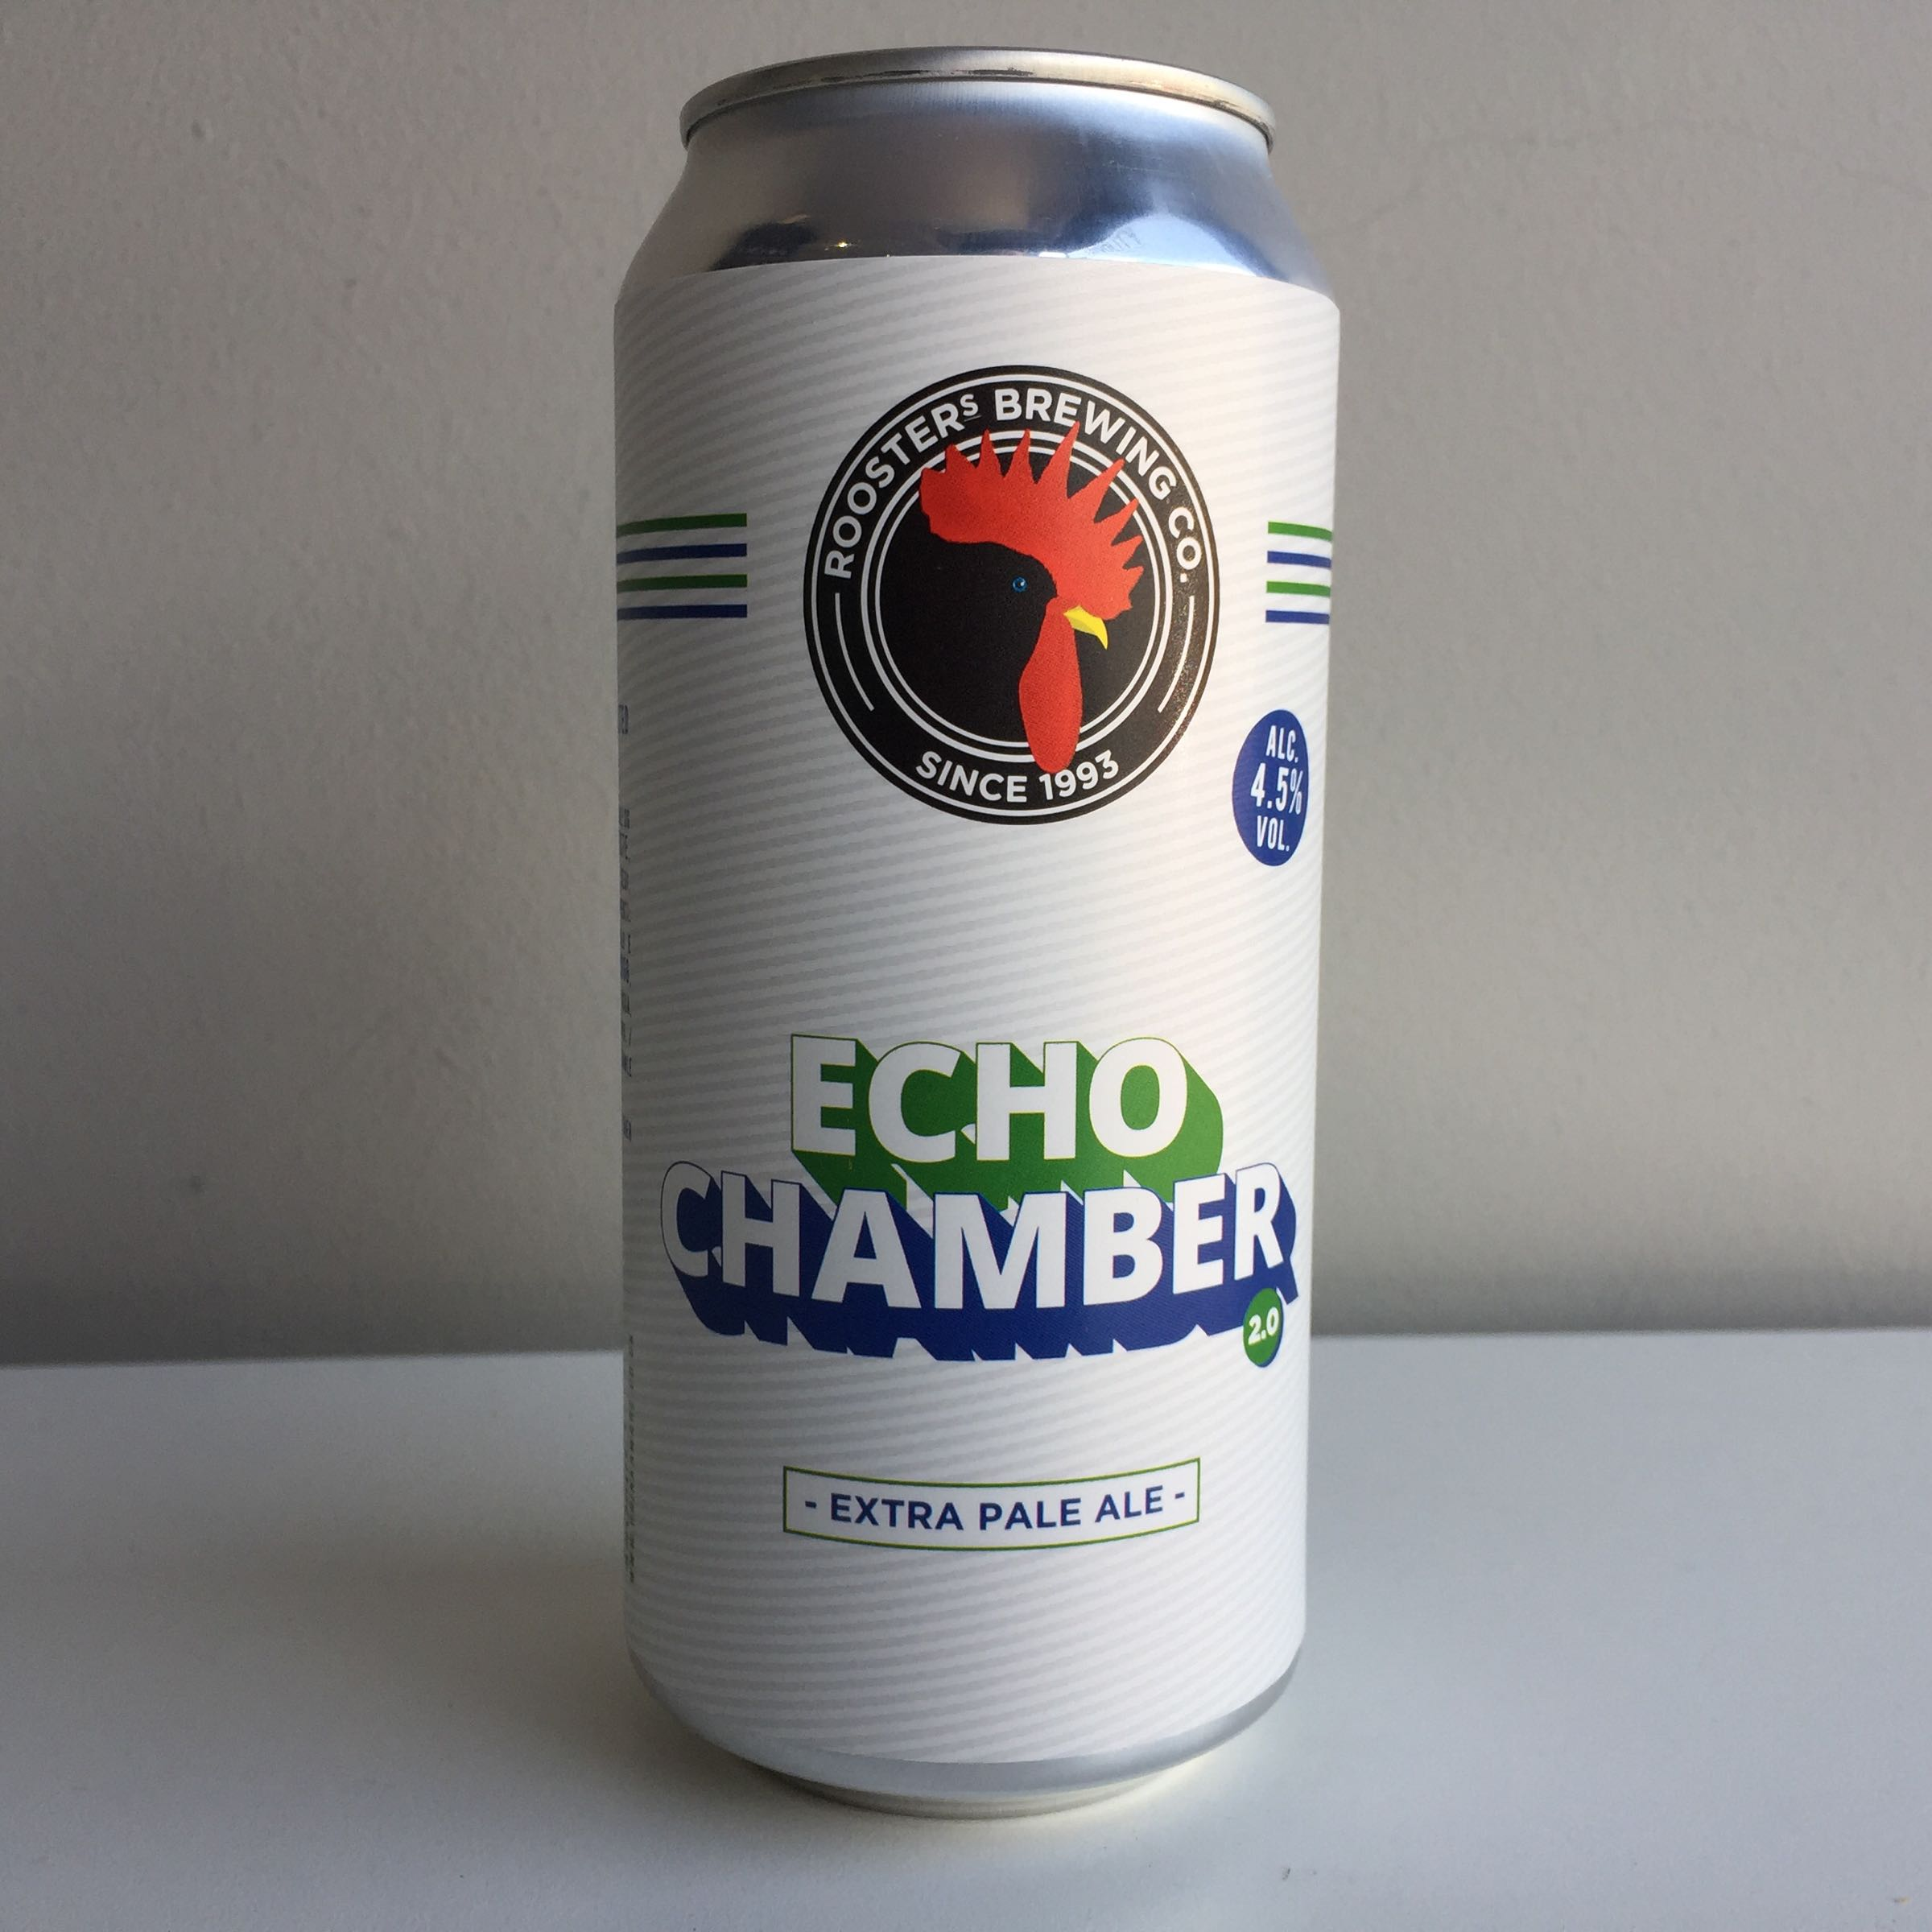 Roosters Brewing Co. 'Echo Chamber' Extra Pale Ale 440ml 4.5% ABV